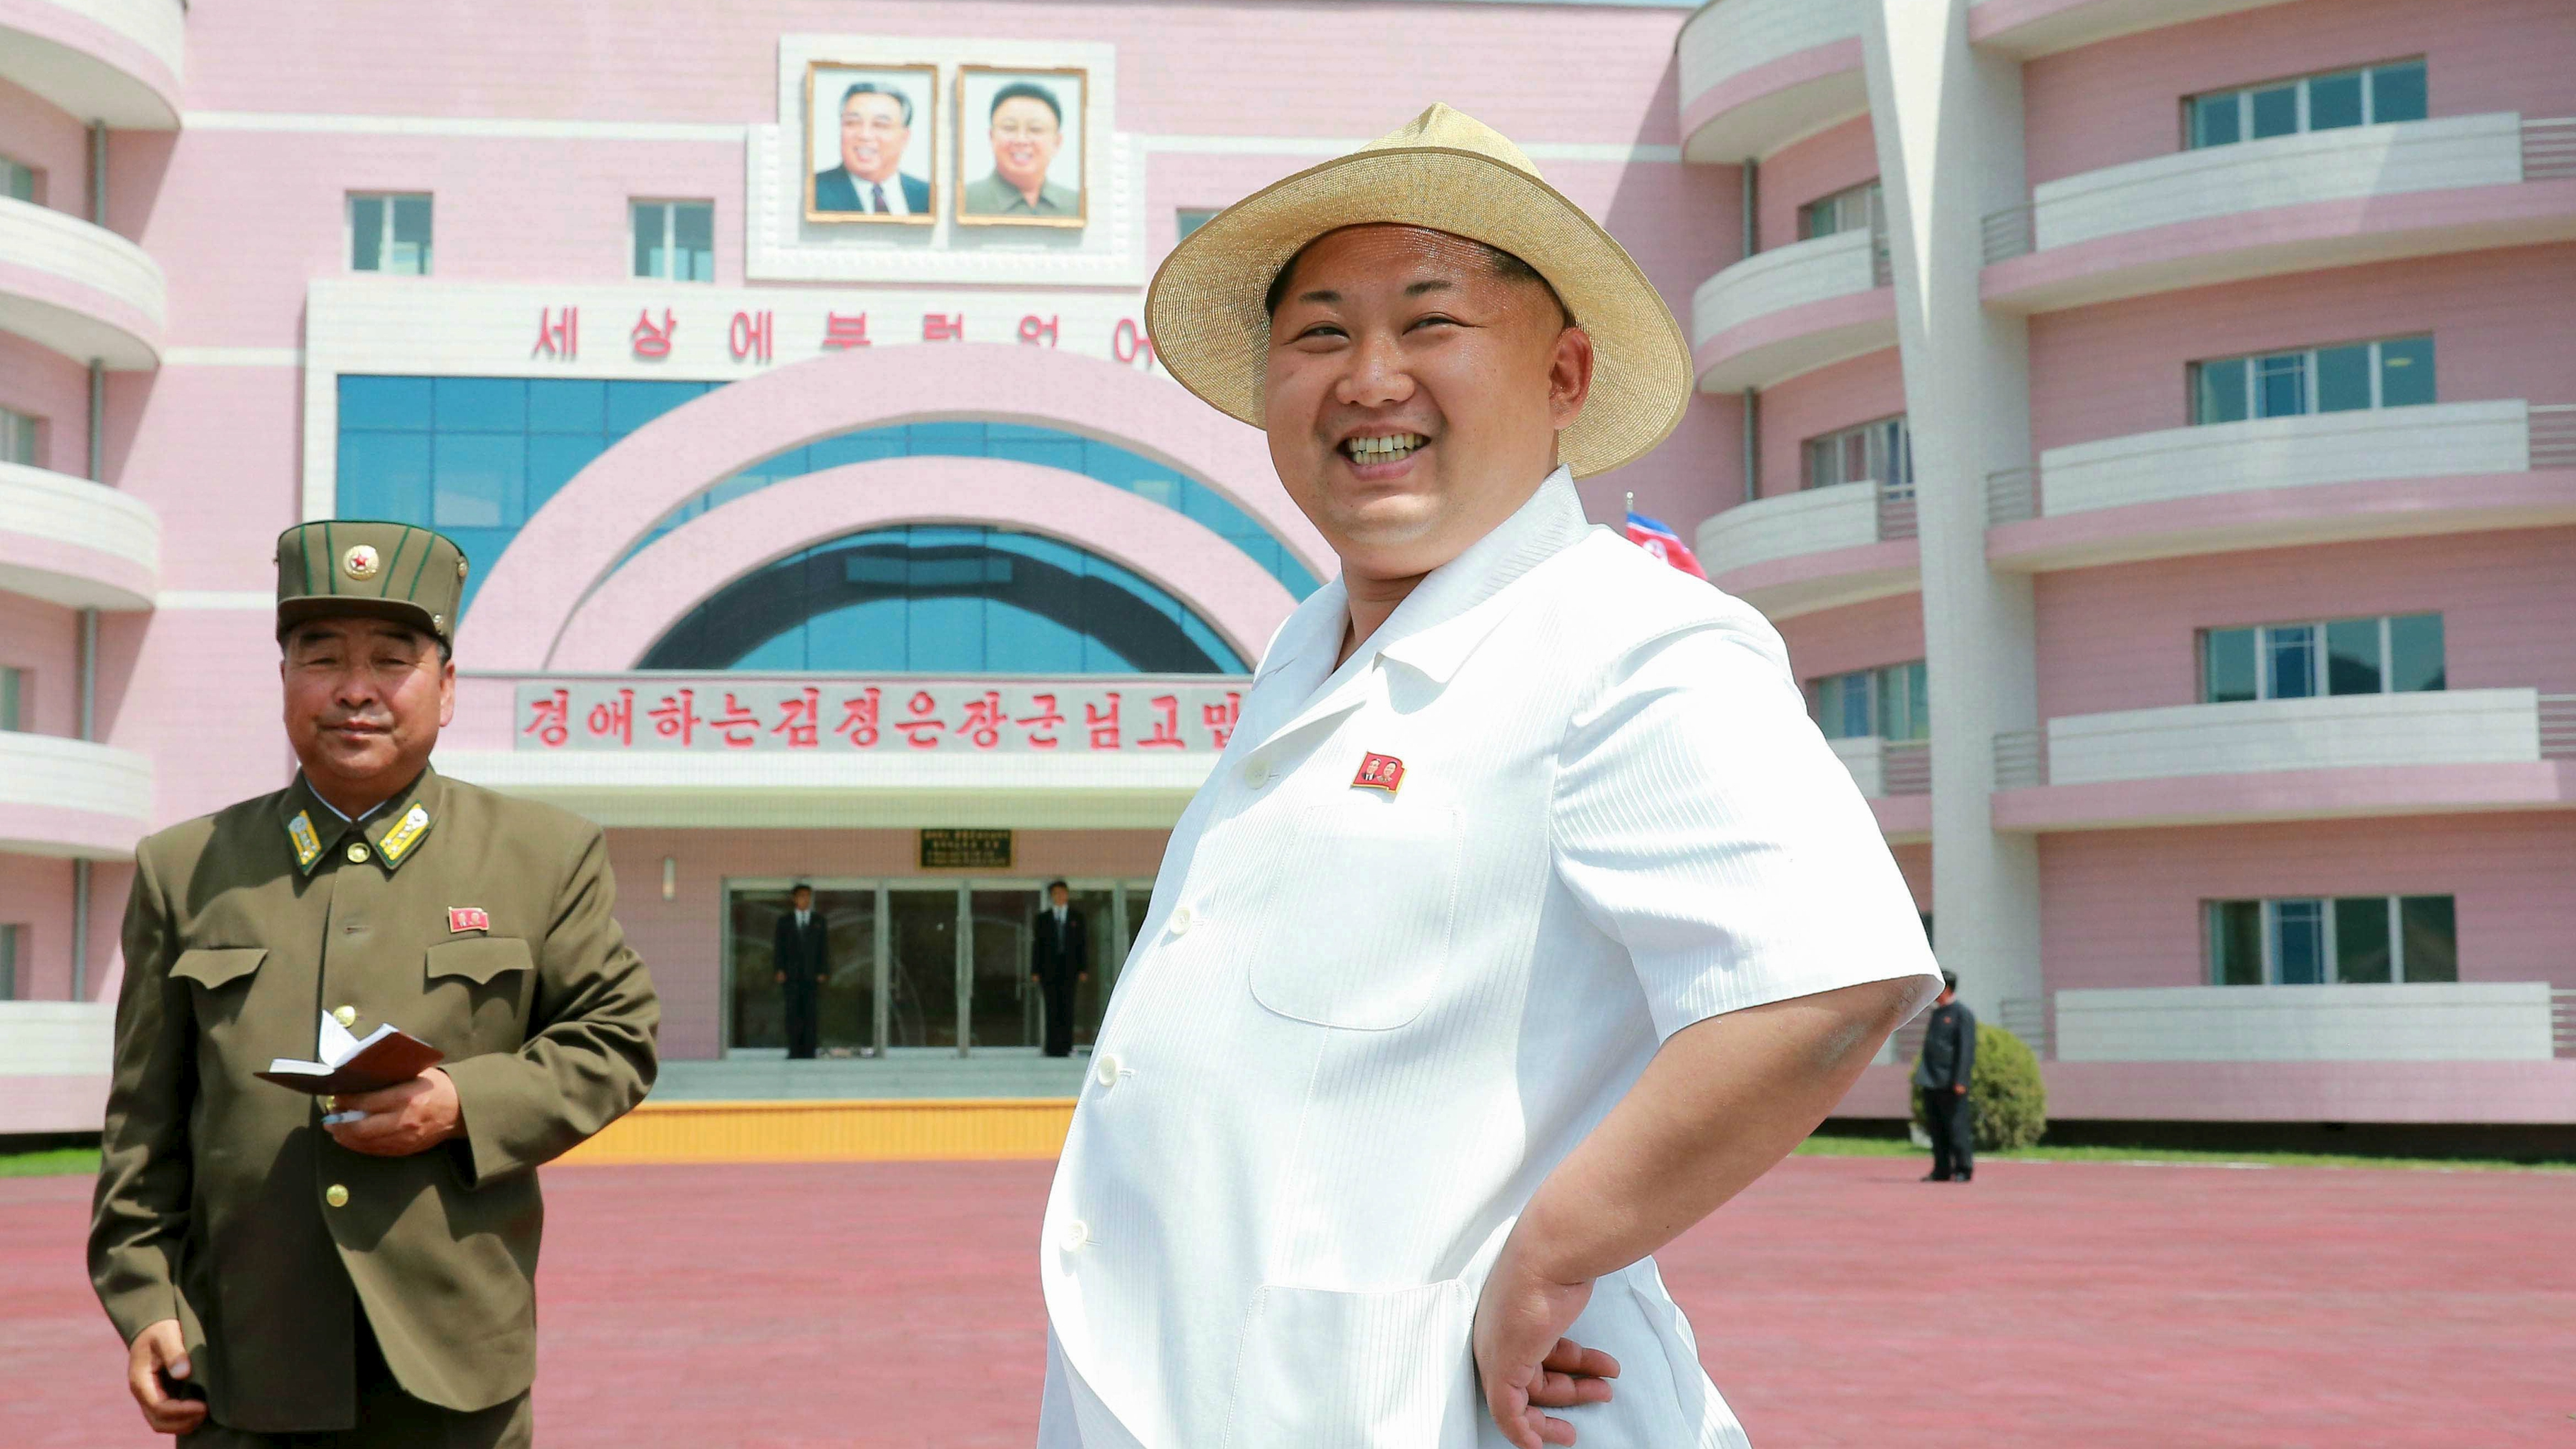 North Korean leader Kim Jong Un provides field guidance to the Wonsan Baby Home and Orphanage in the run-up to a ceremony for their completion, in this undated photo released by North Korea's Korean Central News Agency (KCNA) June 2, 2015.